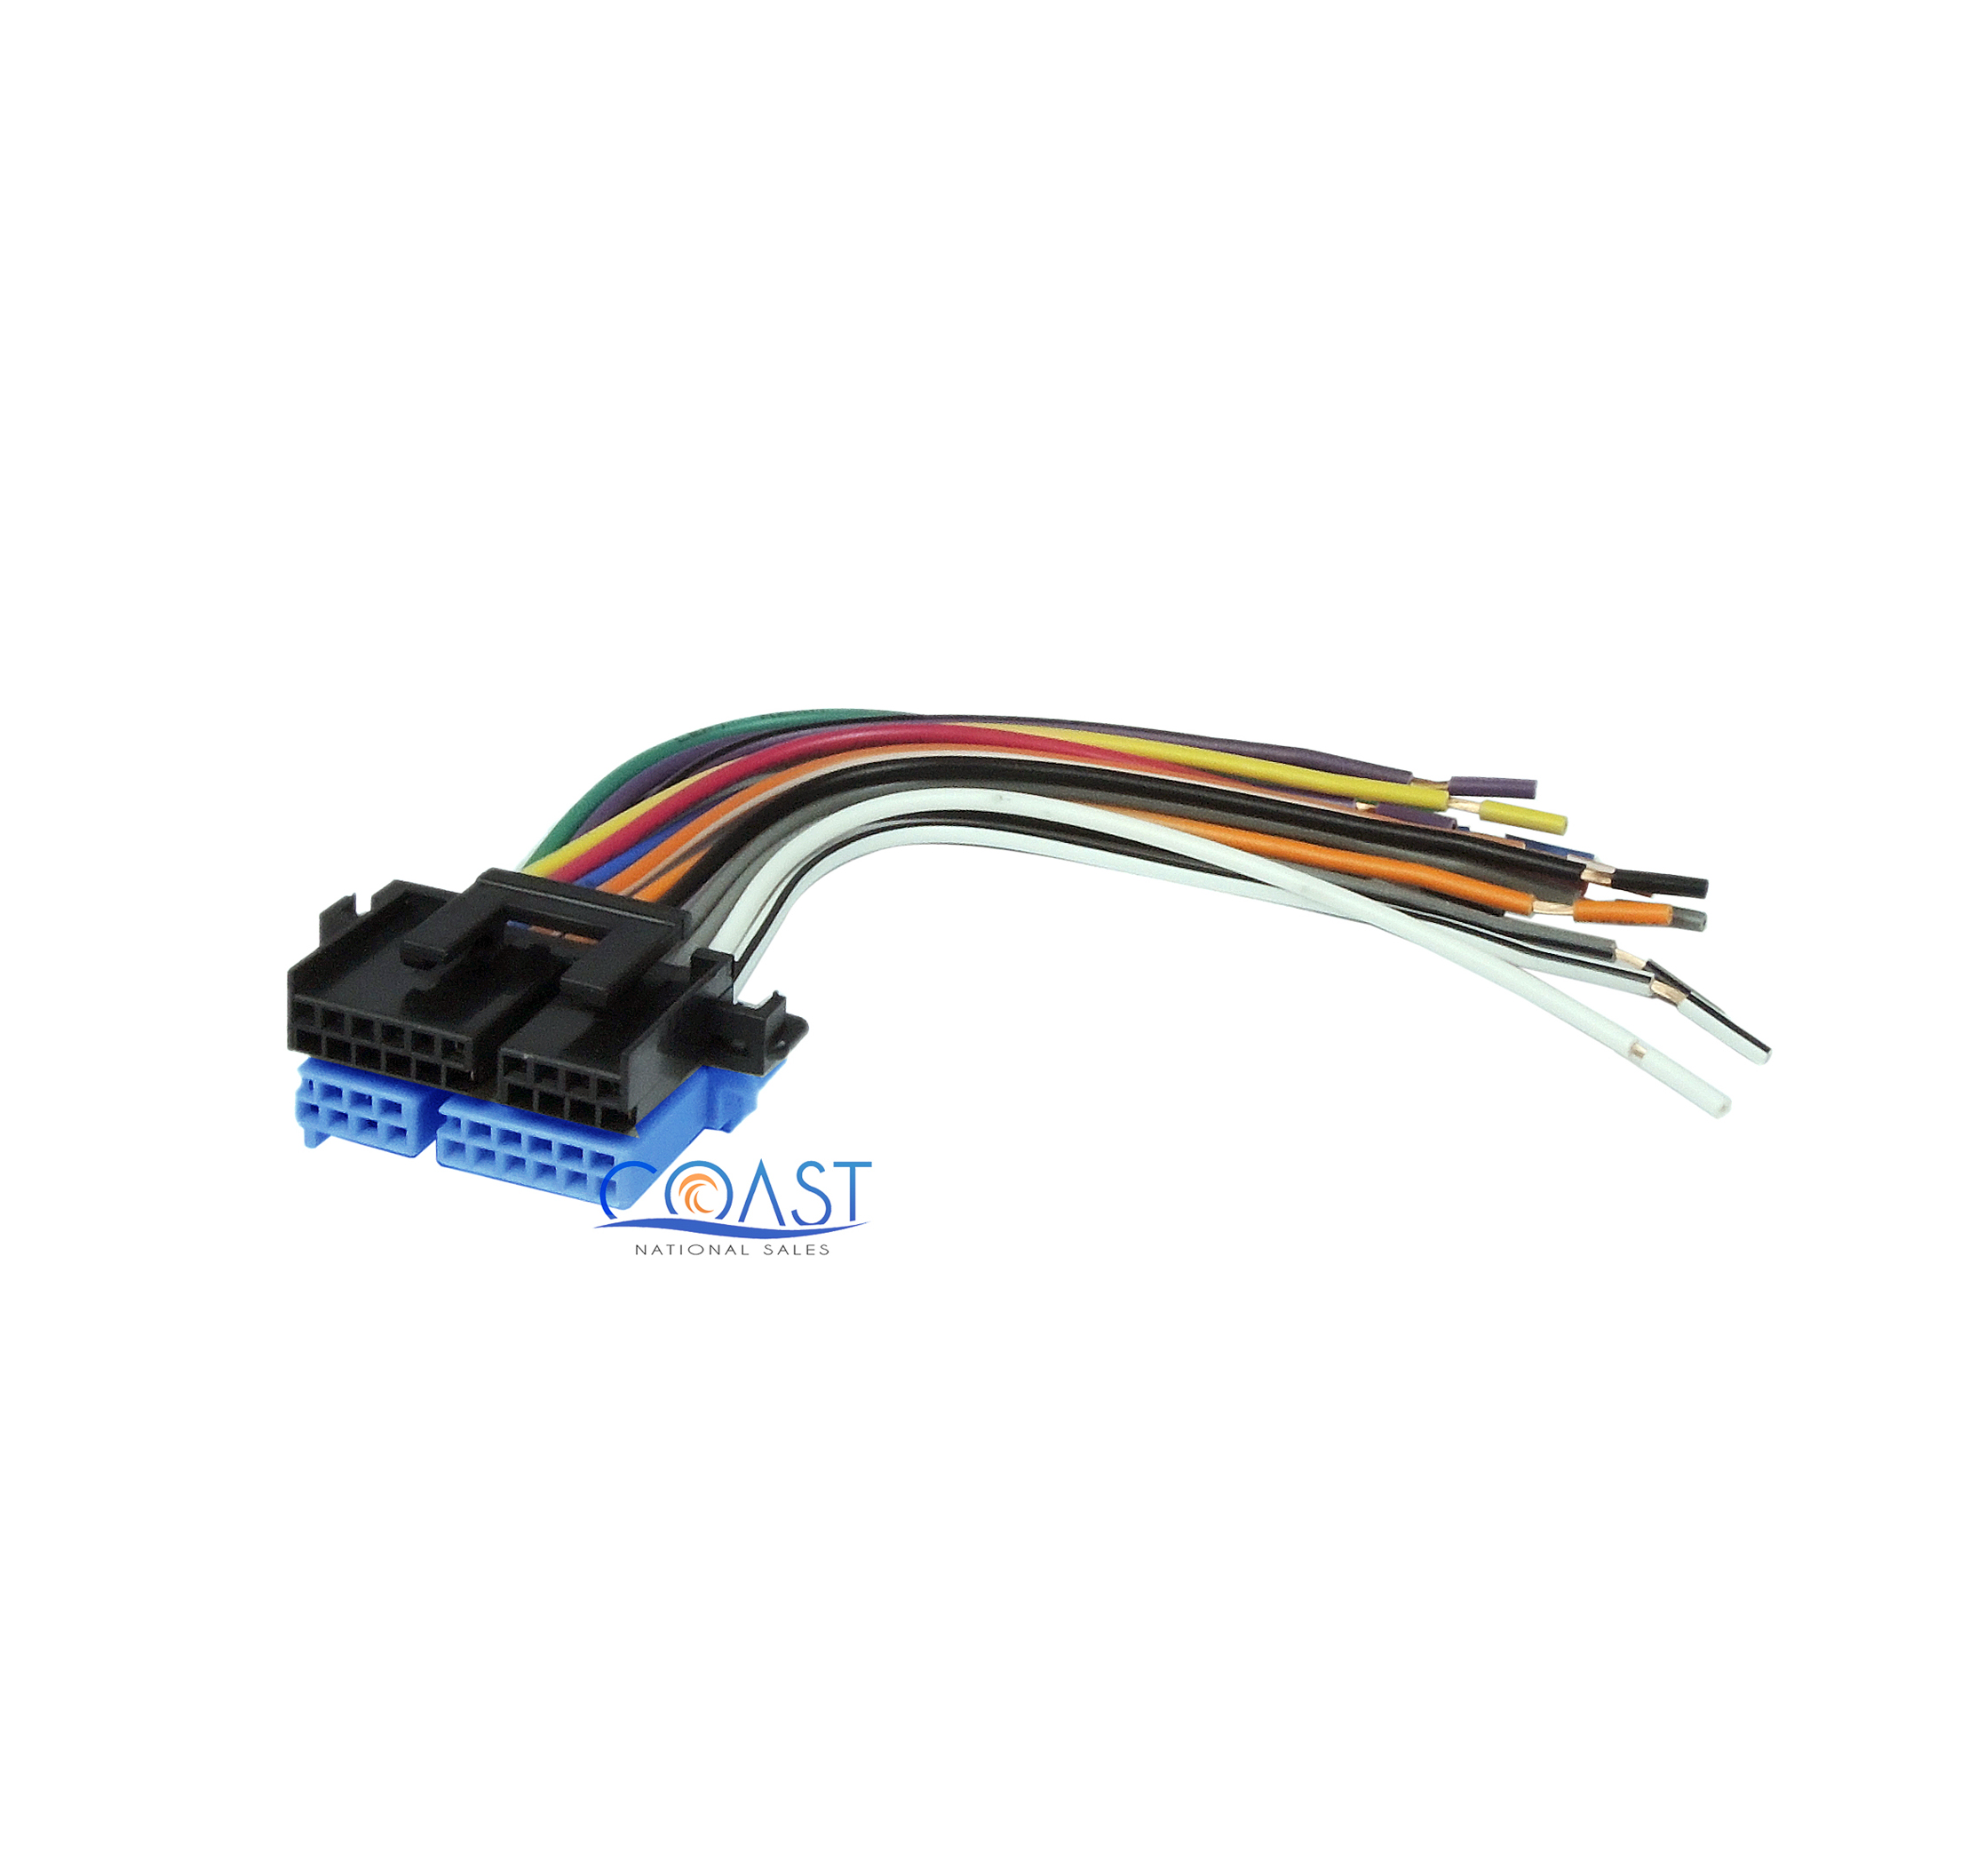 GM 1343M wiring diagram for 2004 chevy silverado 2500 the wiring diagram radio wiring harness for 2005 chevy tahoe at panicattacktreatment.co